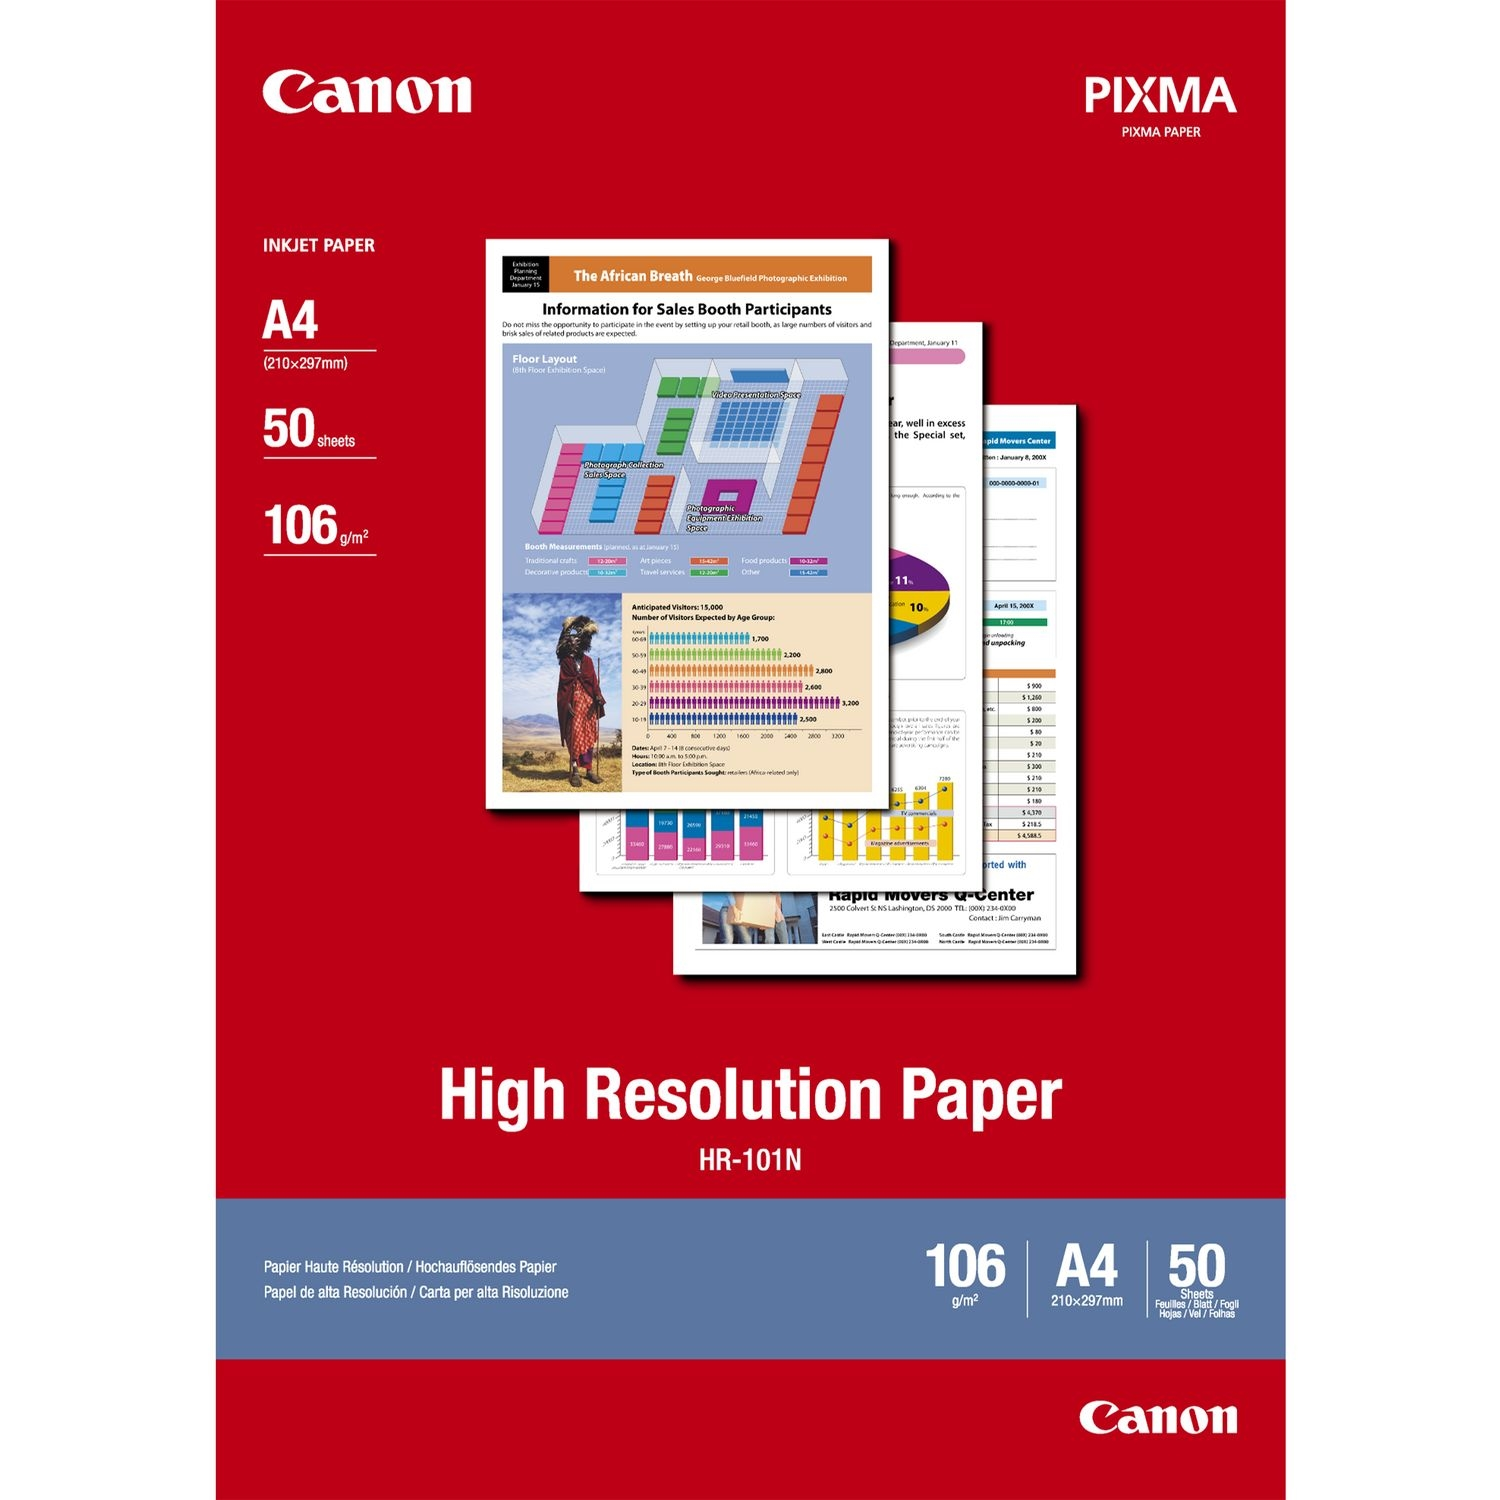 Original Canon HR-101N 106gsm A4 High Resolution Paper - 50 sheets (1033A002)